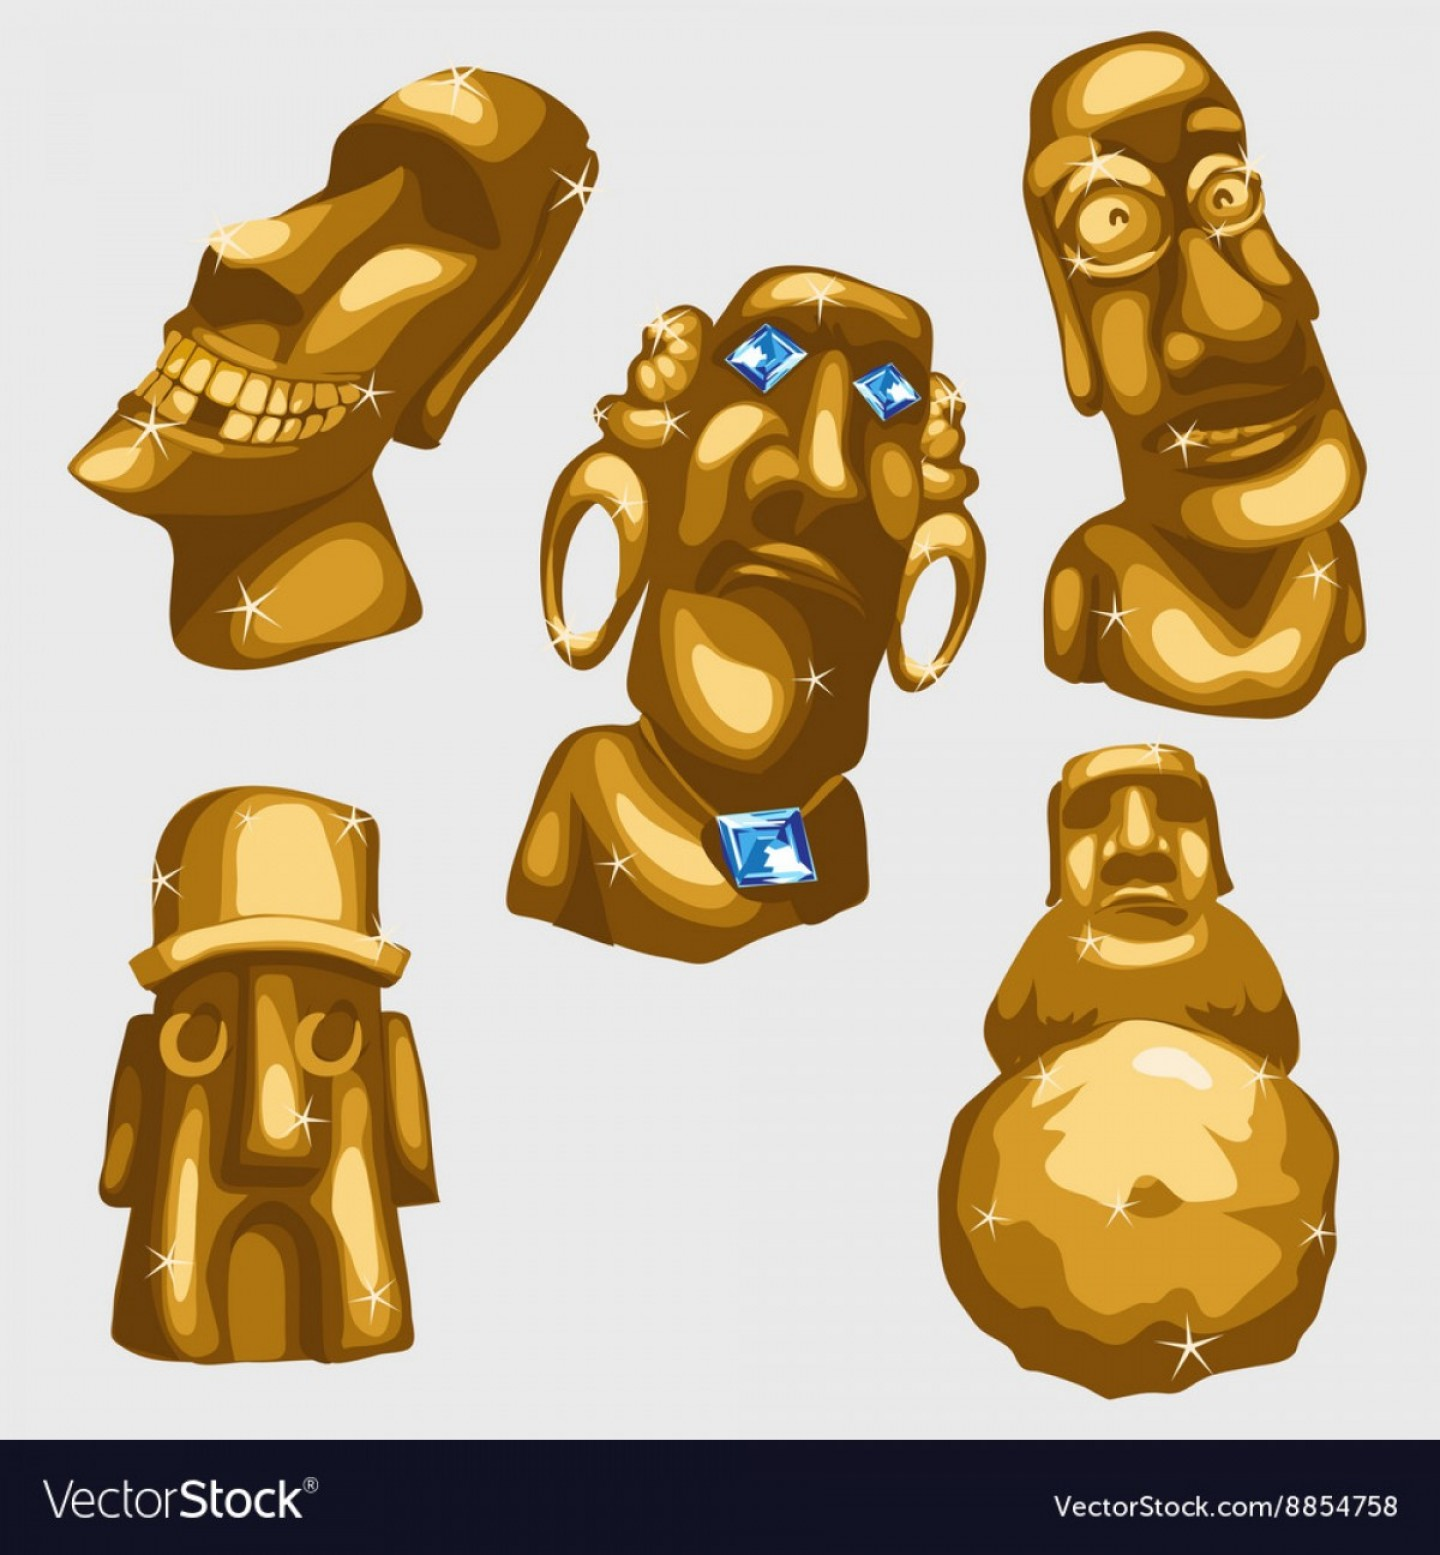 Mayan Sun Gold Vector Png: Maya Sculptures From Gold With Sapphires Vector